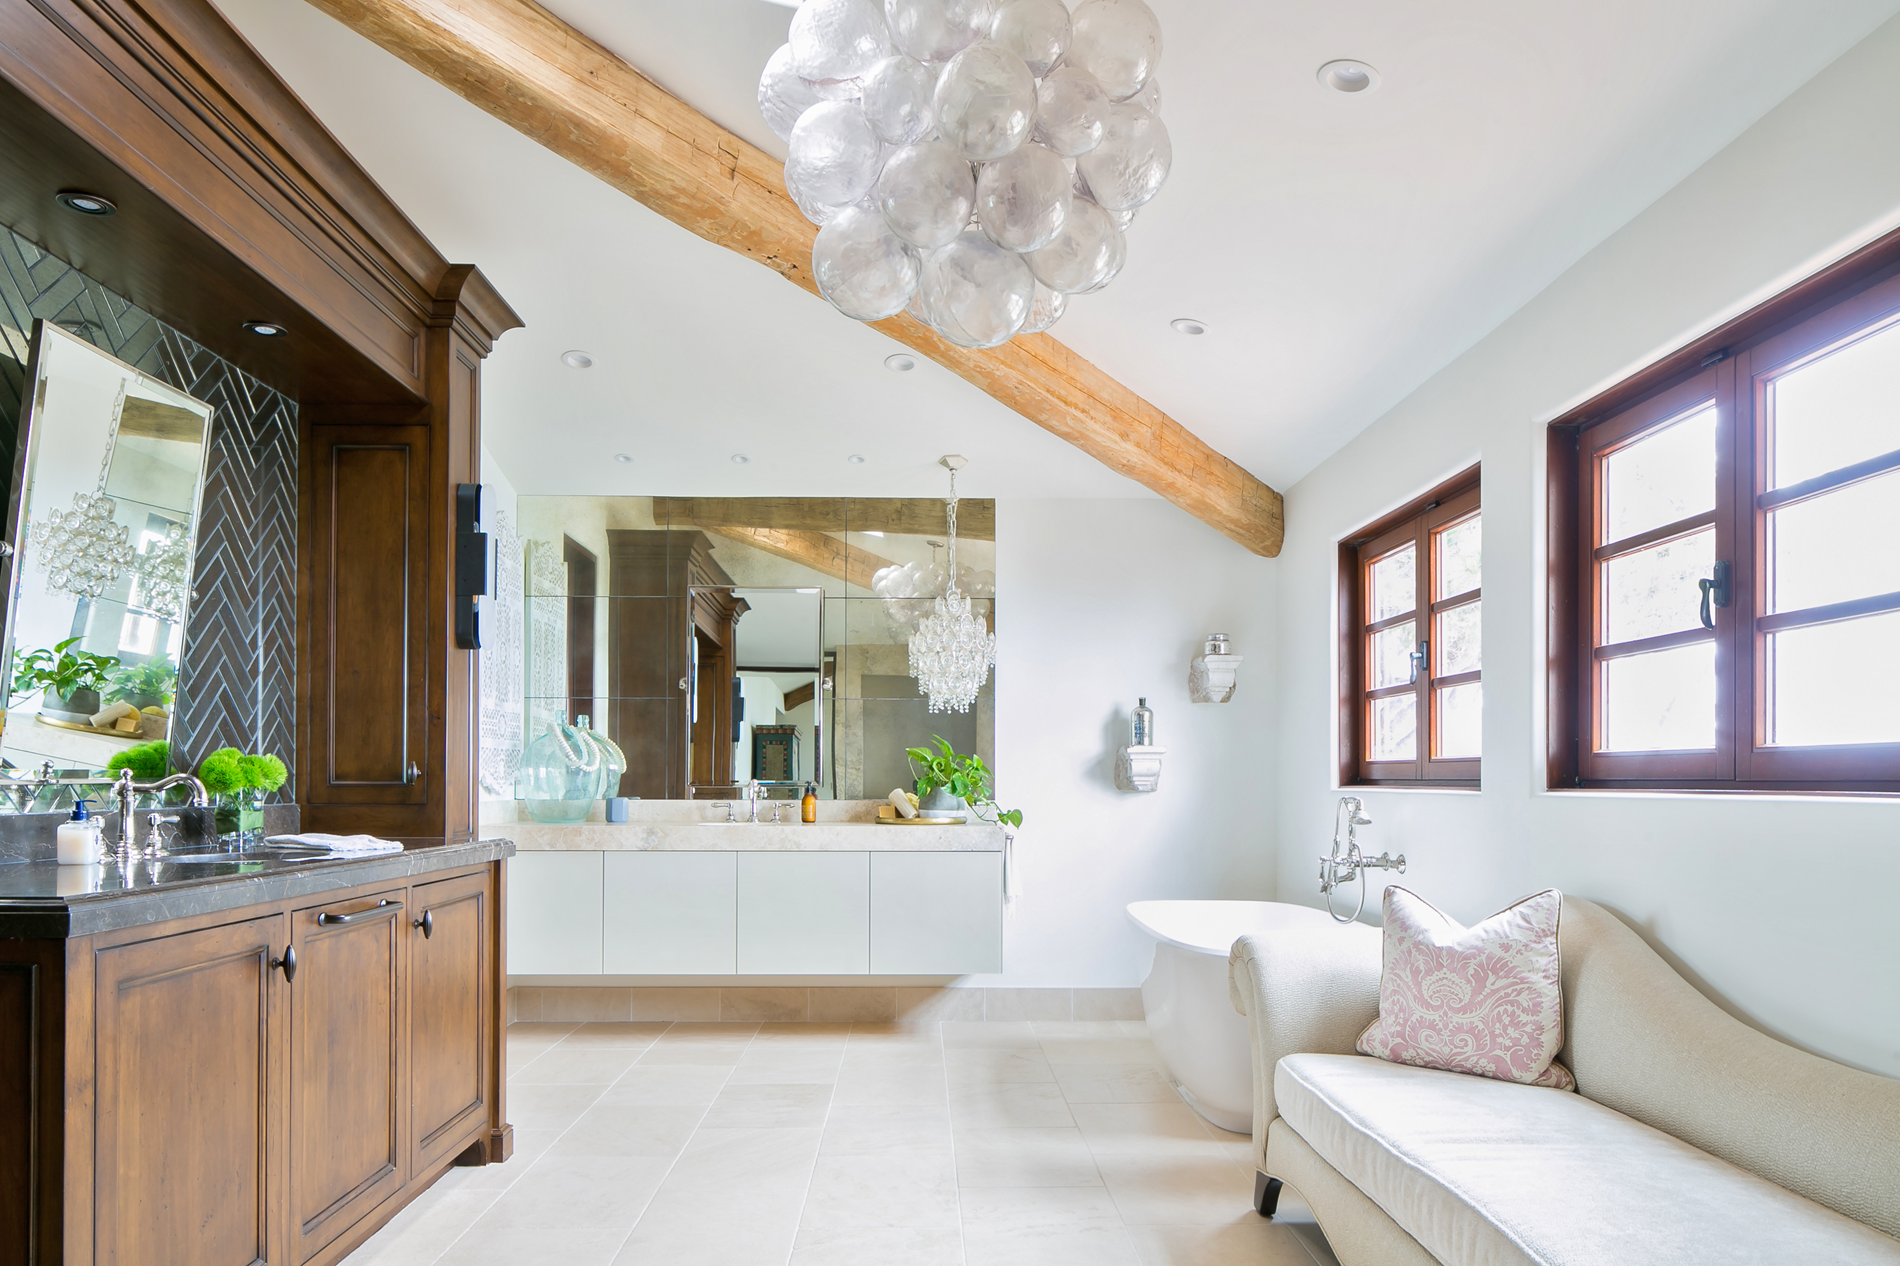 Bath Of The Year - San Diego Magazine - Grunow Construction - Image 01 Featured